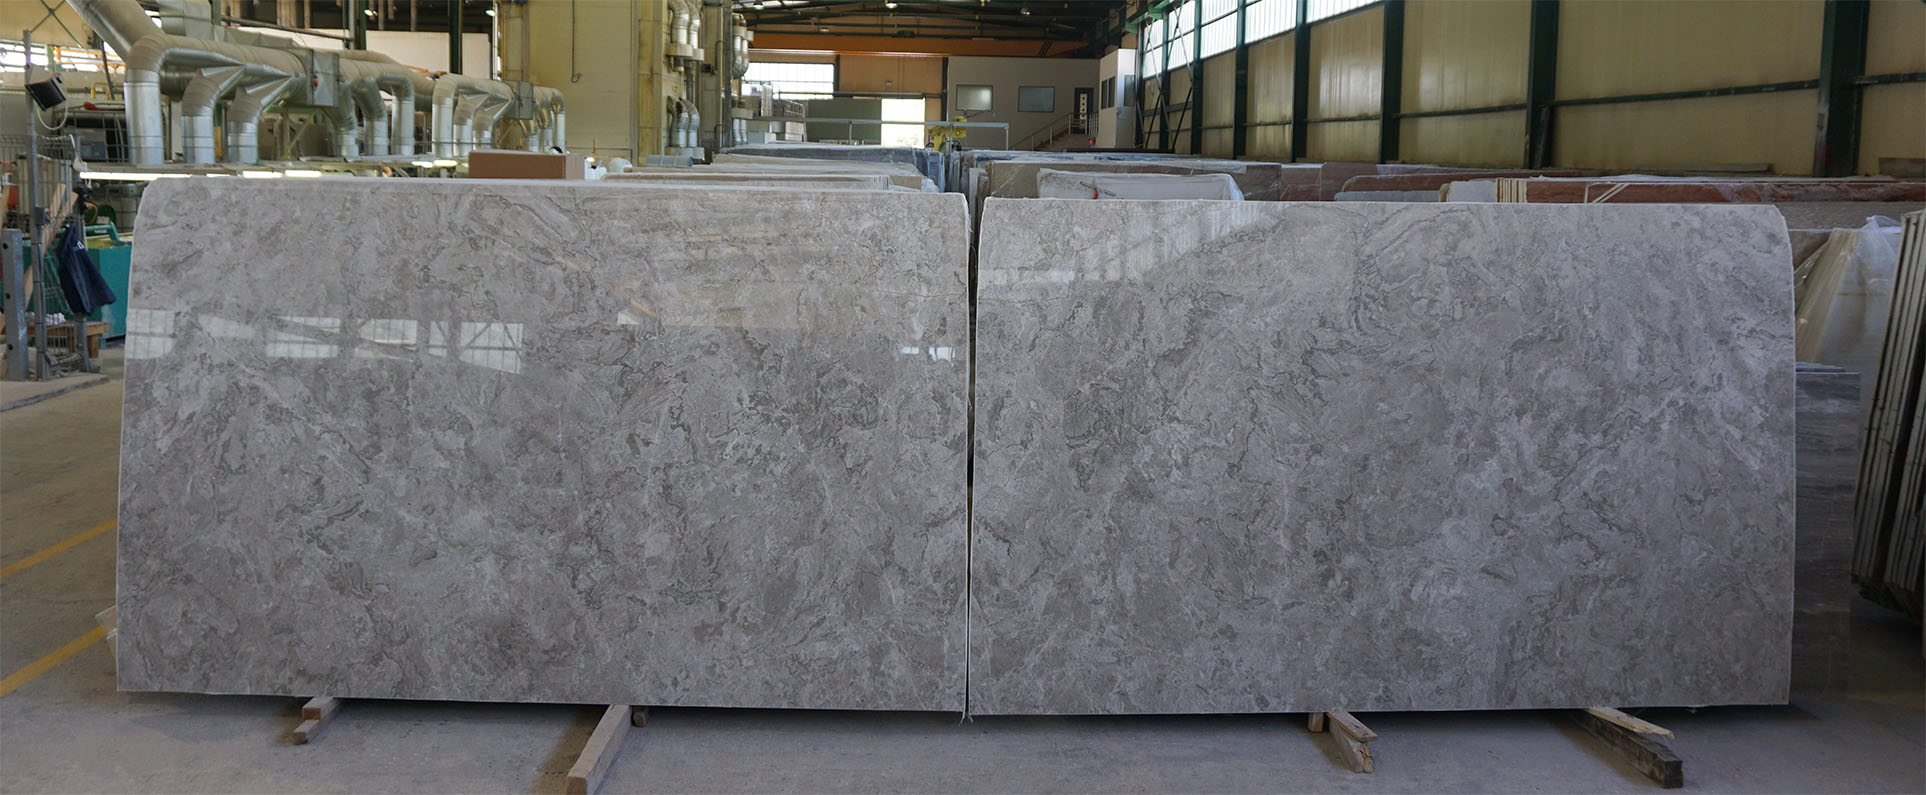 Palladion Light grey marble